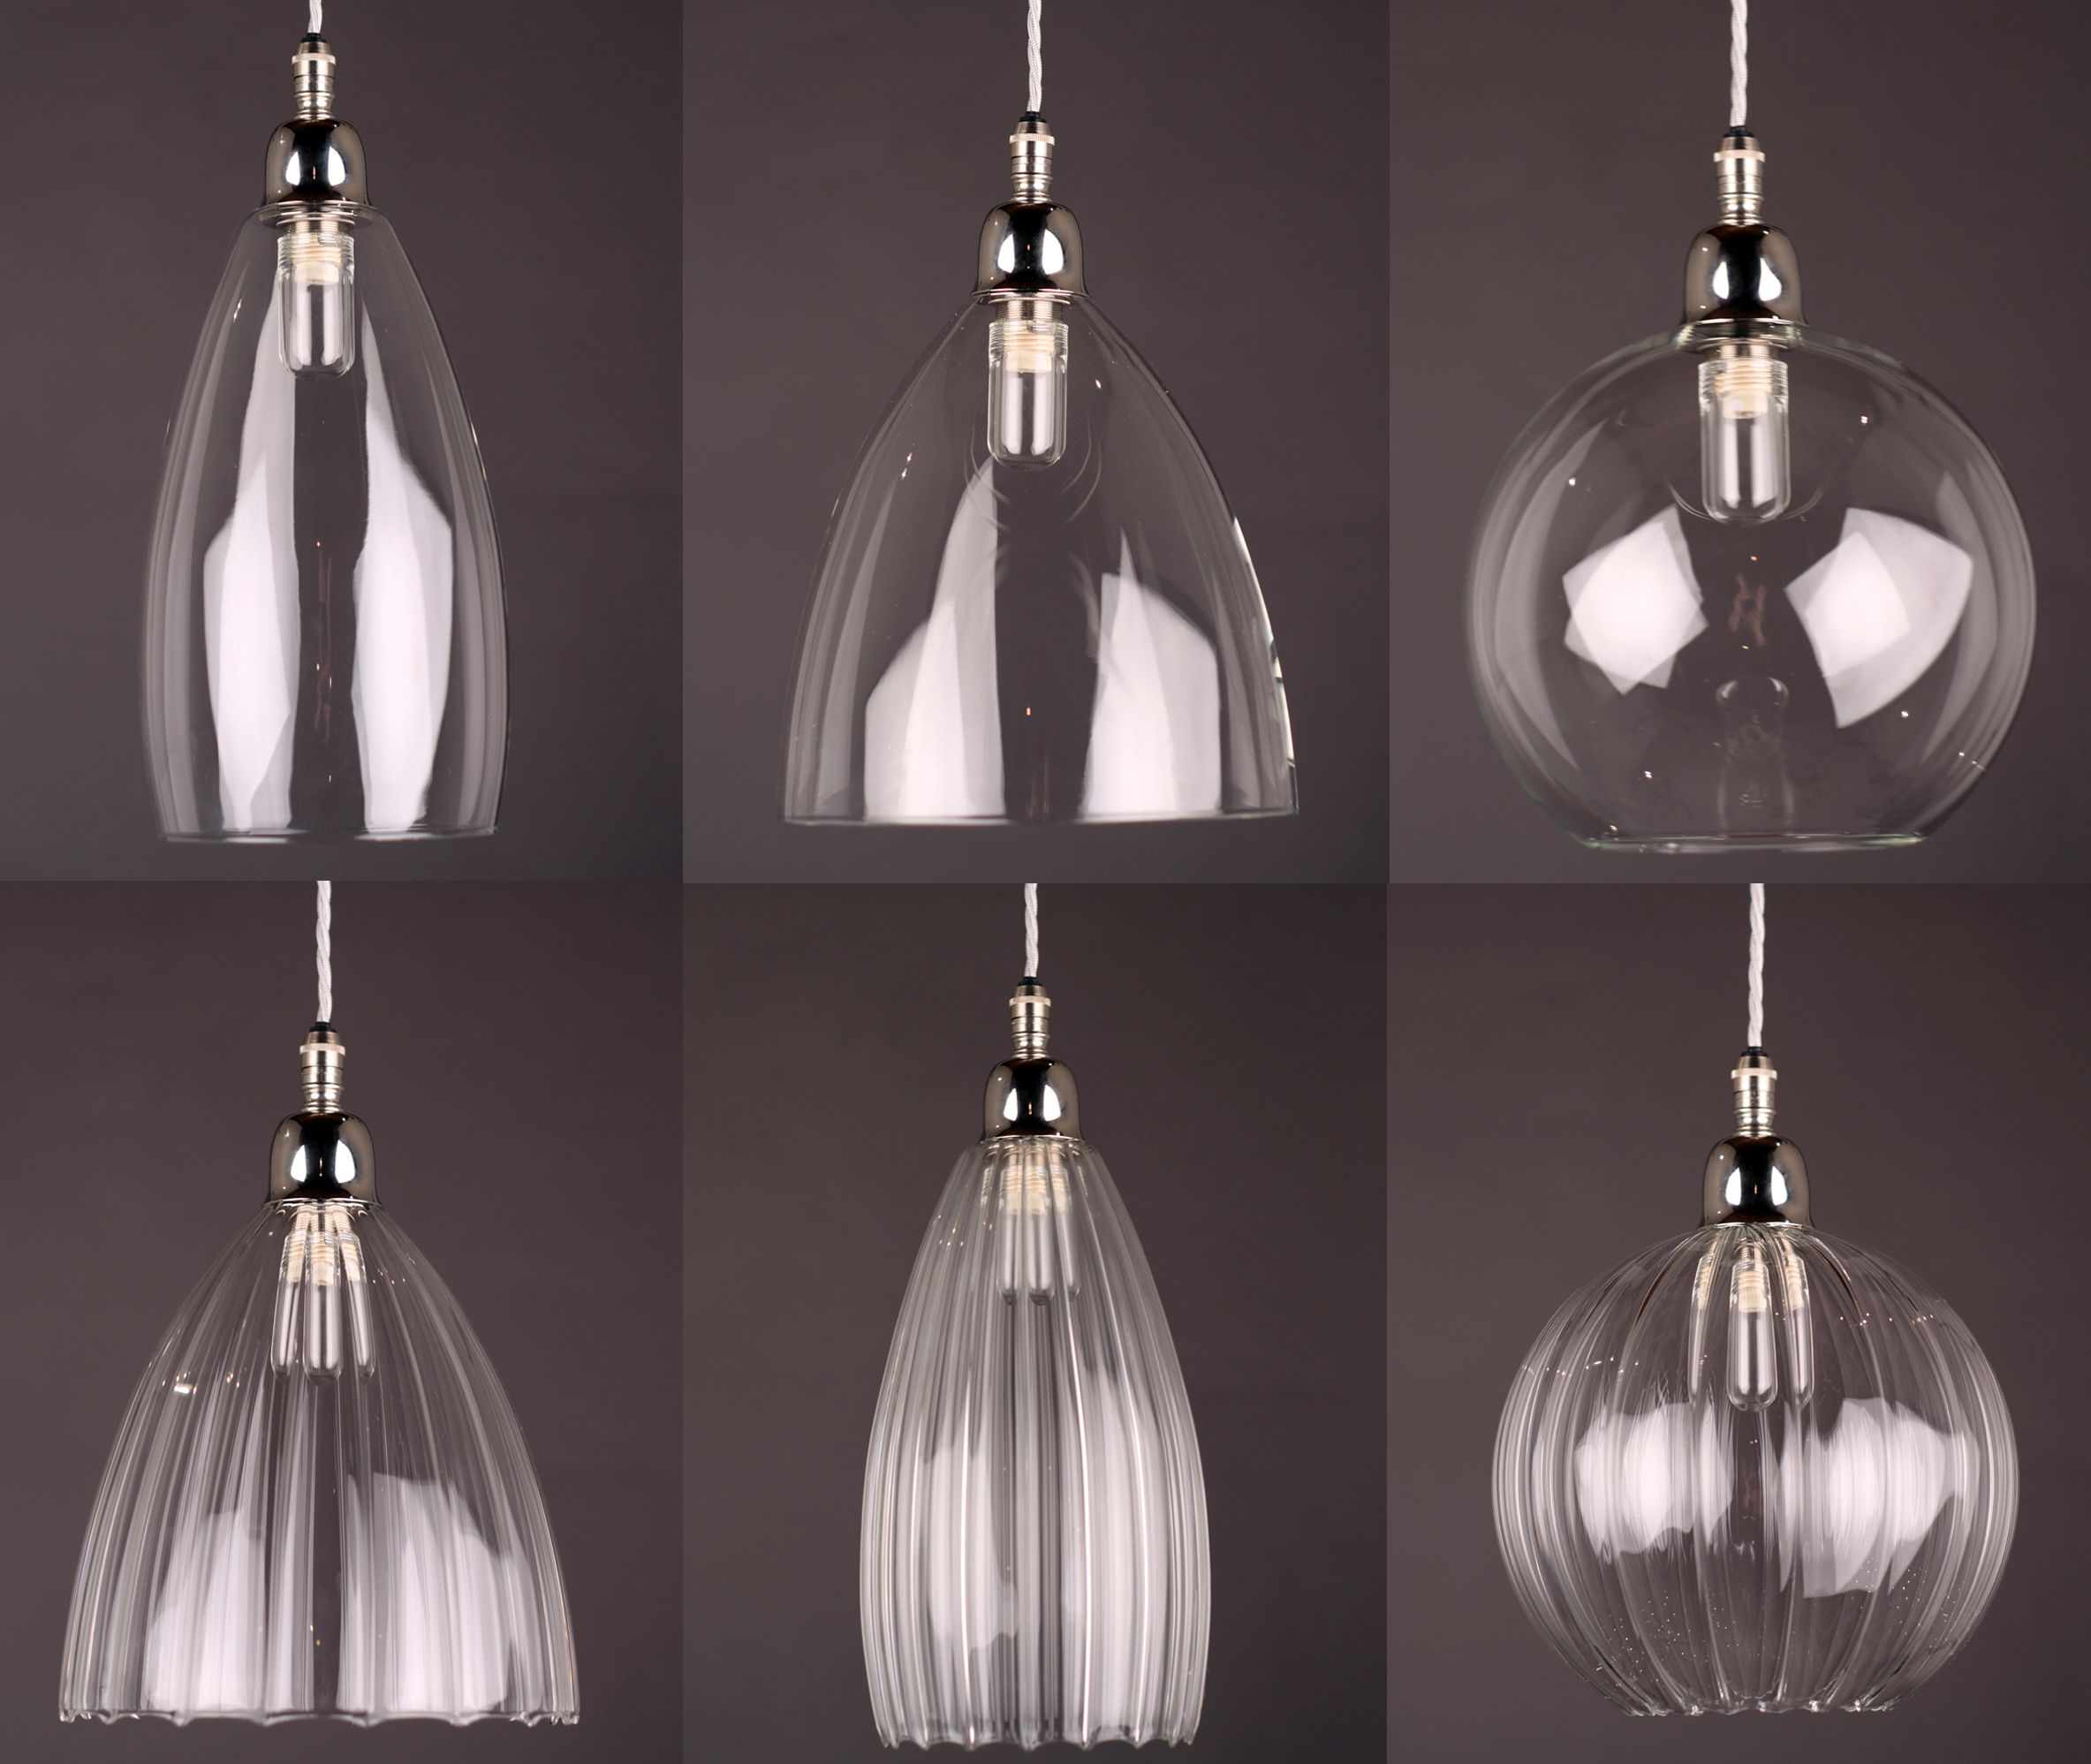 new style 205ee 14339 Our new range of handmade IP44 rated bathroom pendants is ...